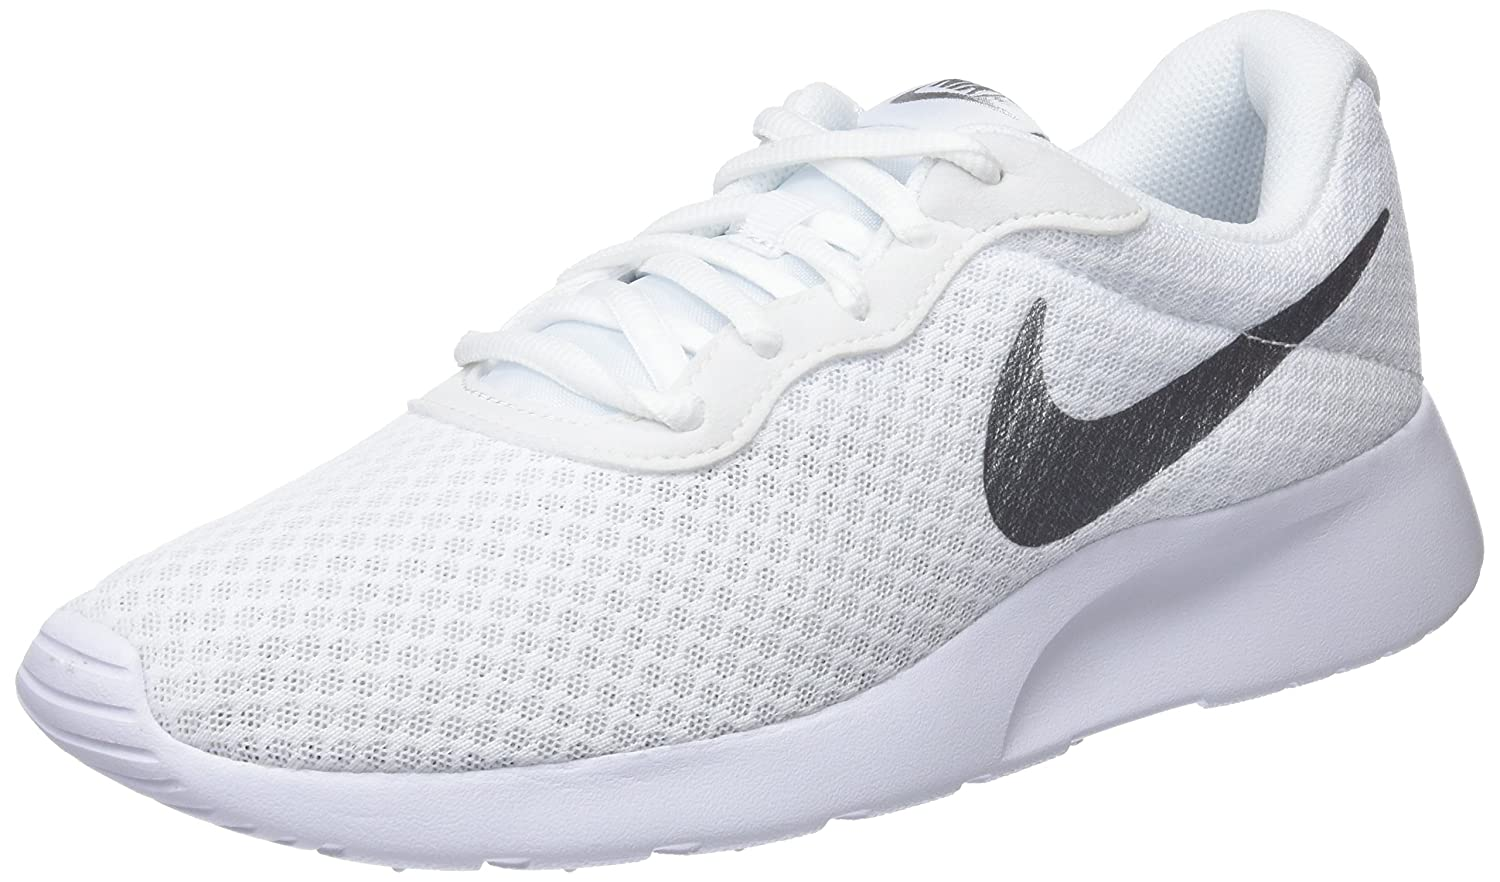 NIKE Women's Tanjun Running Shoes B06VWFGHH7 7.5 B(M) US|White/Metallic Silver